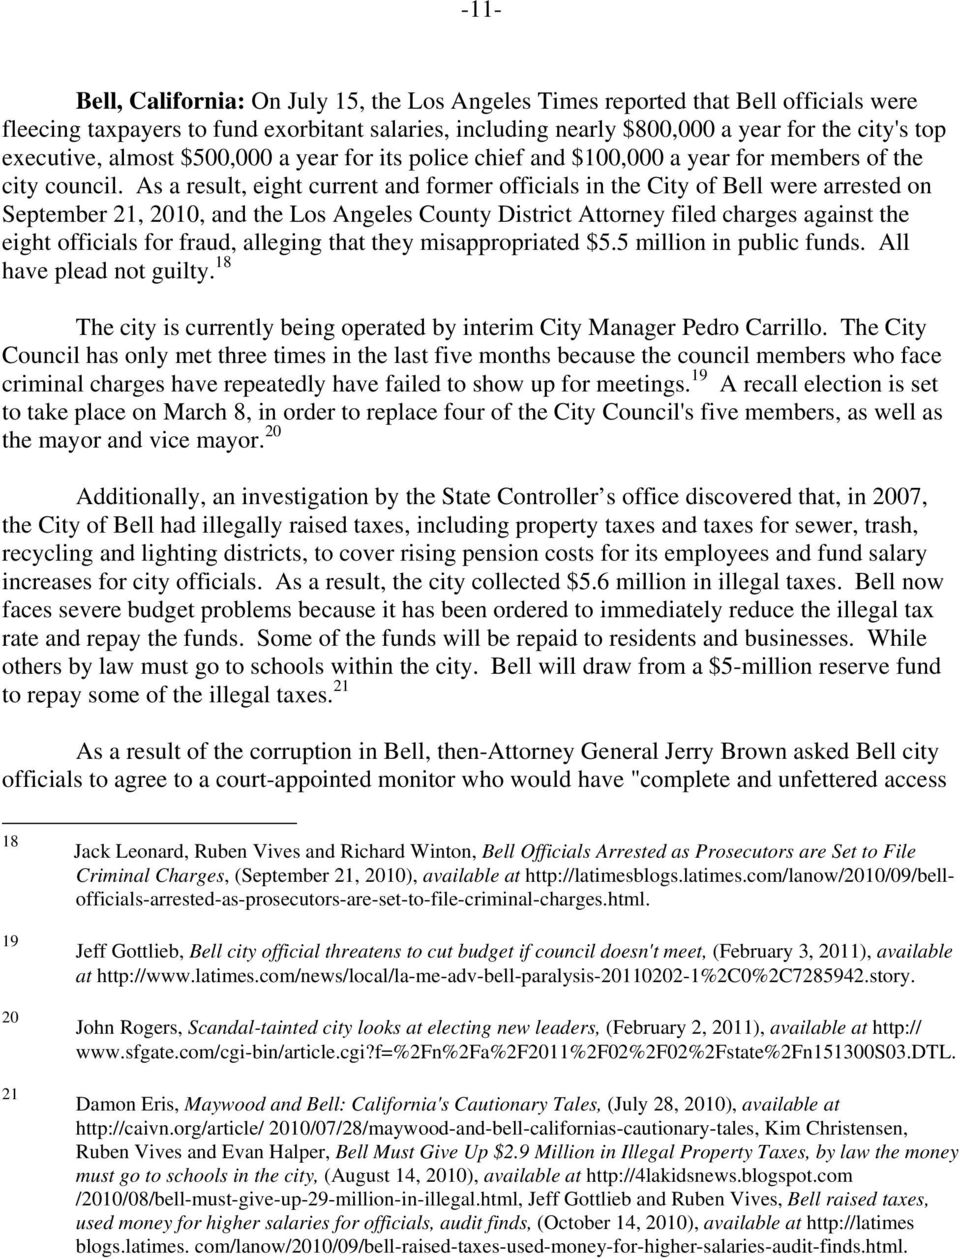 As a result, eight current and former officials in the City of Bell were arrested on September 21, 2010, and the Los Angeles County District Attorney filed charges against the eight officials for